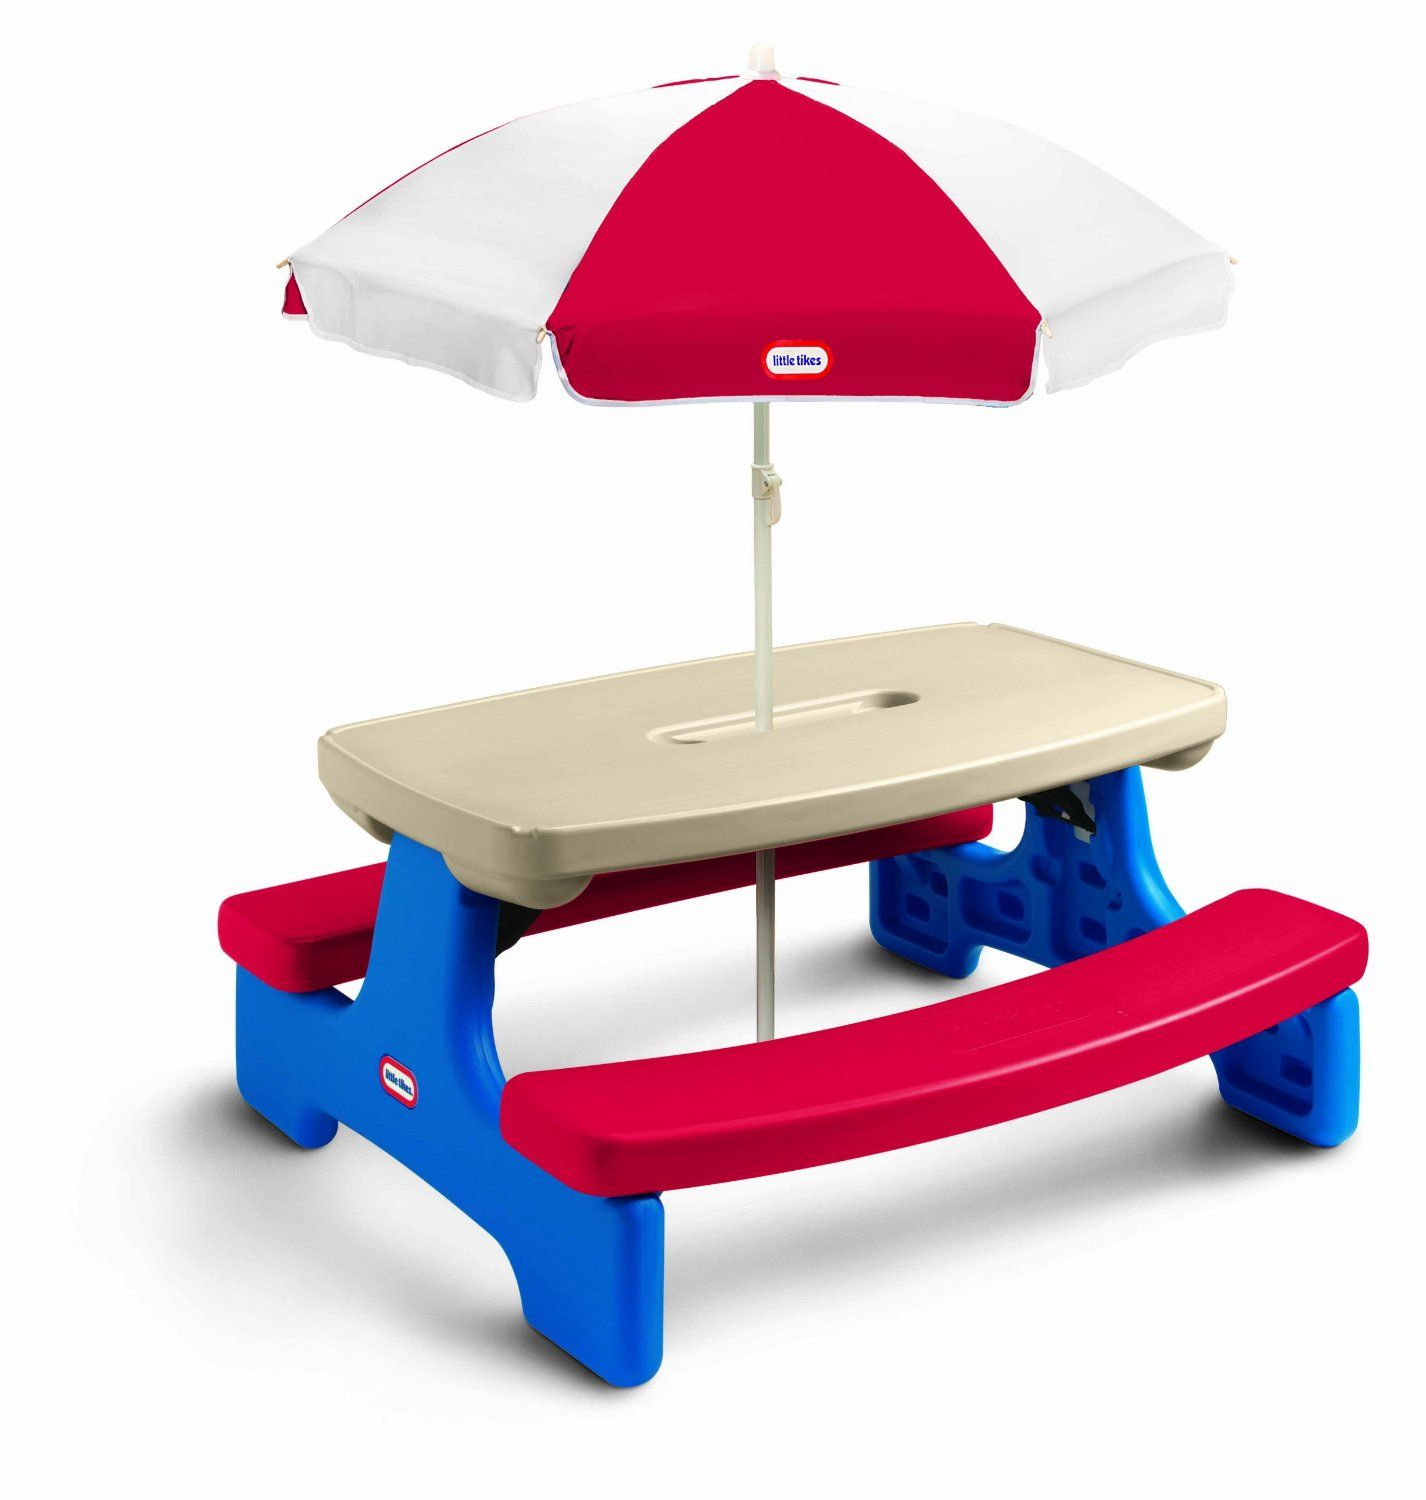 Amazon.com: Little Tikes Easy Store Large Picnic Table with Umbrella ...